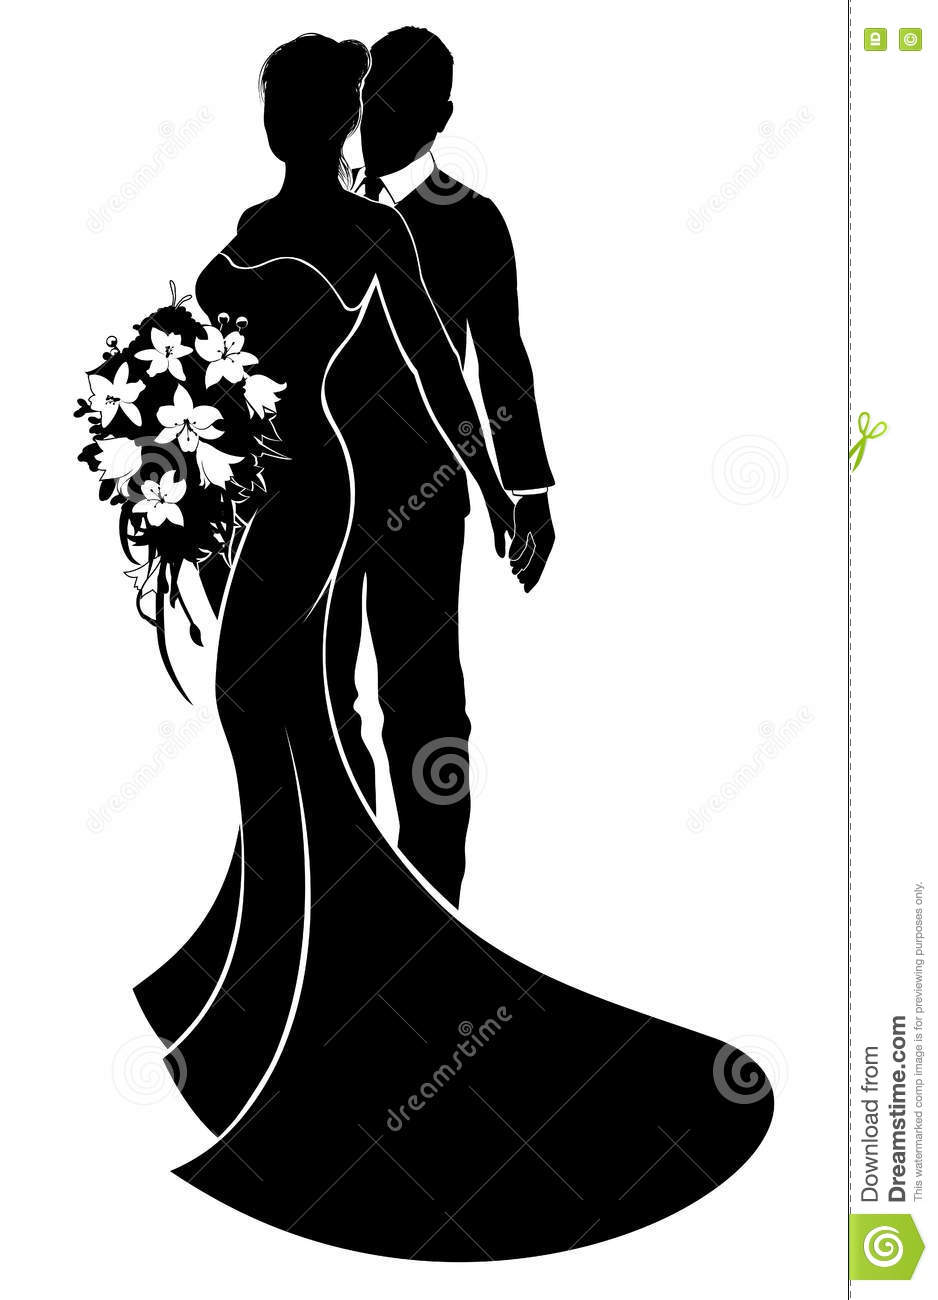 Wedding Couple Bride Groom Silhouette Stock Illustrations 2579 Vectors Clipart